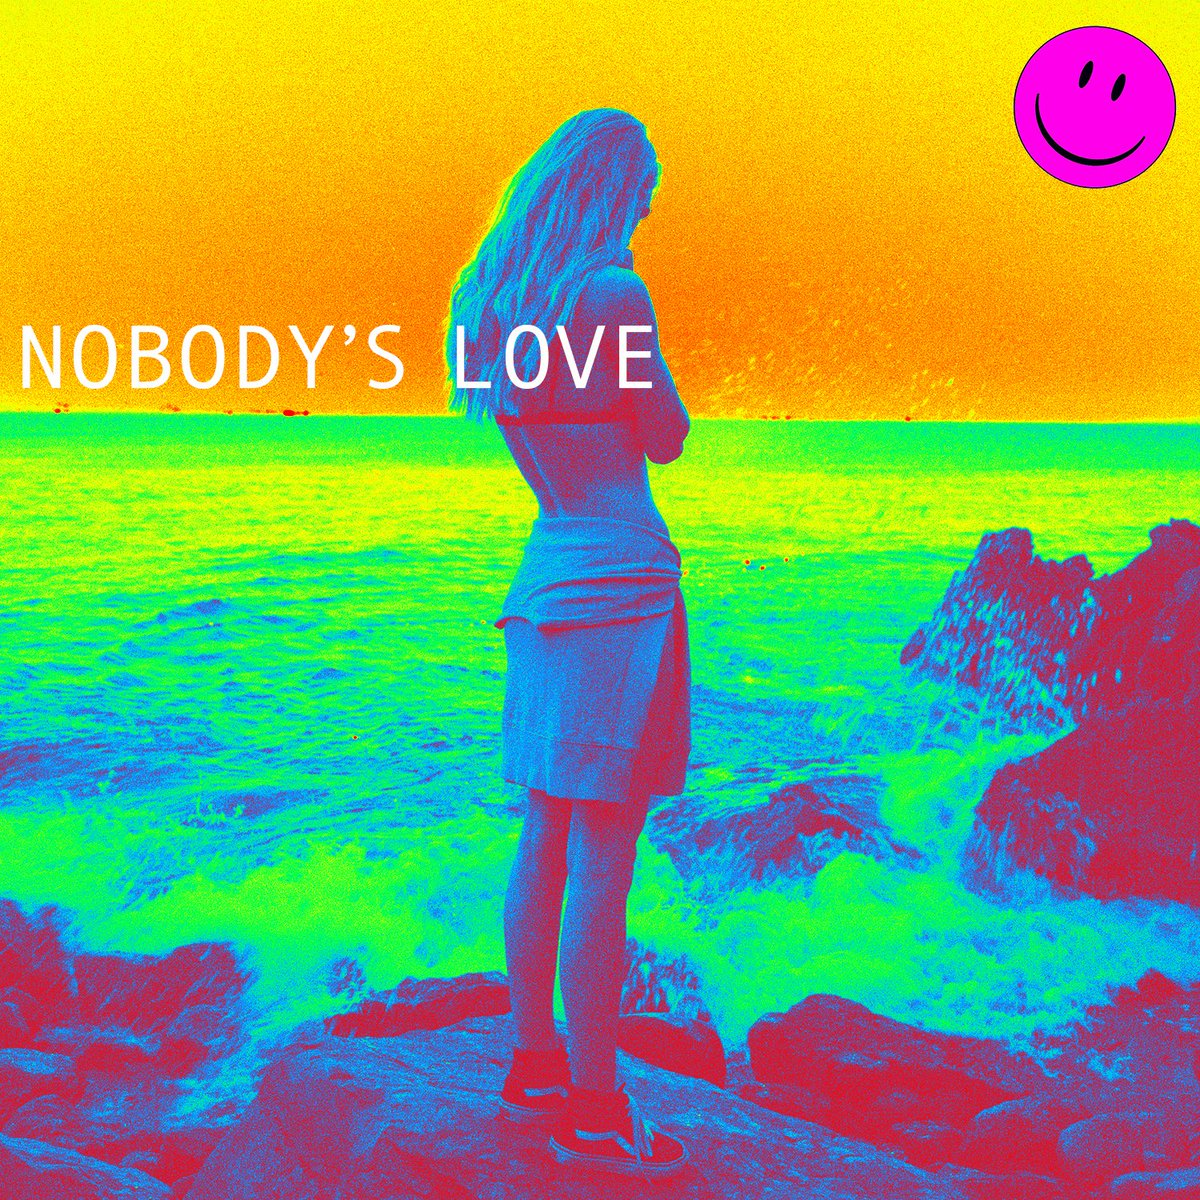 """Nobody's Love"" • 7.23 • 9PM PST Pre-save:"